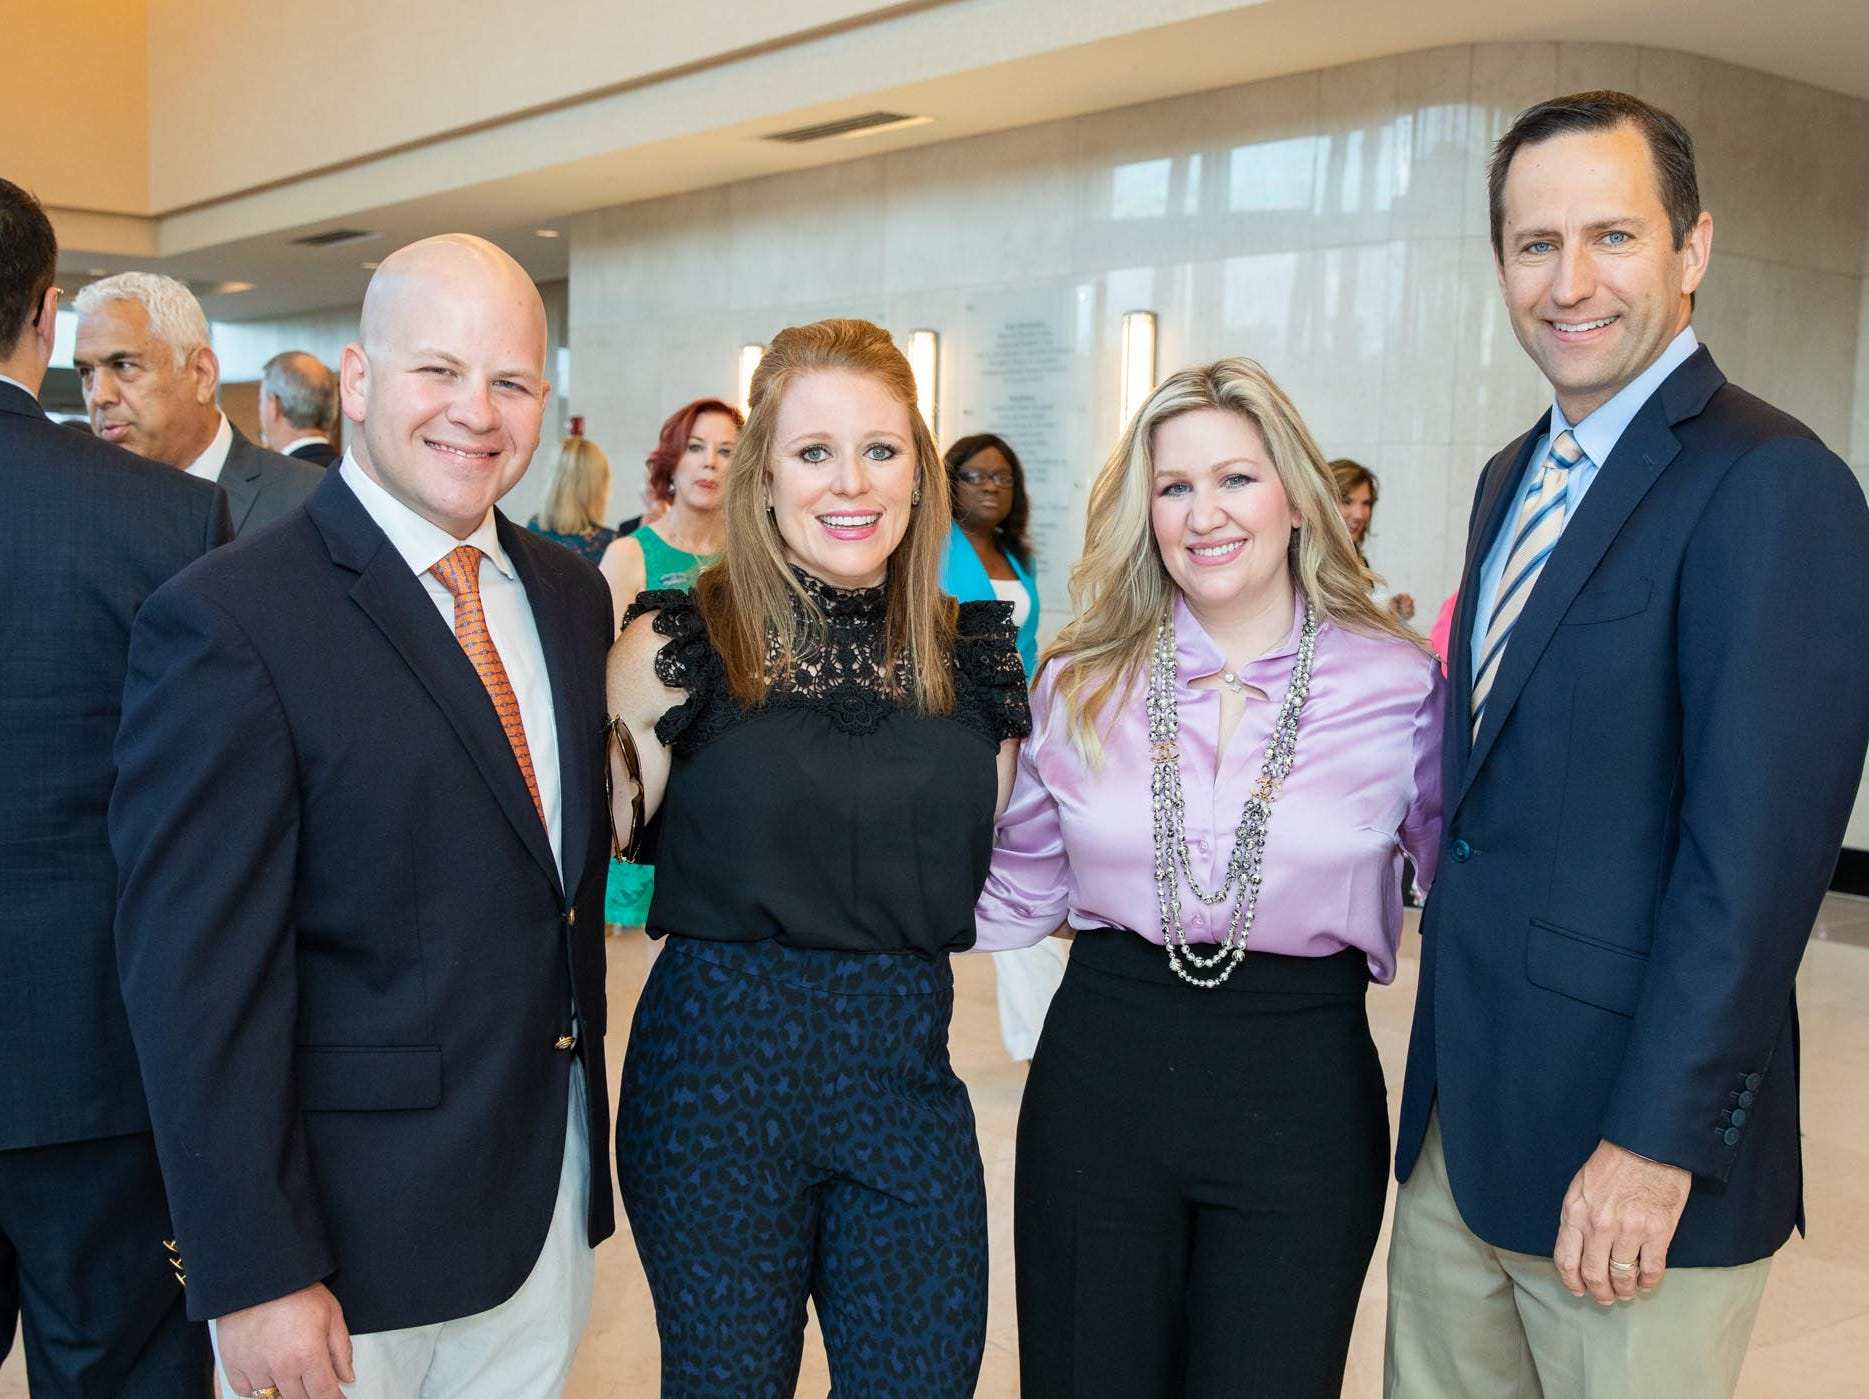 Steven and Jessica McGillicuddy, left, Emily Pantelides and Peter Robbins attend Catch the Wave of Hope's breakfast to raise money and awareness about human sex trafficking.